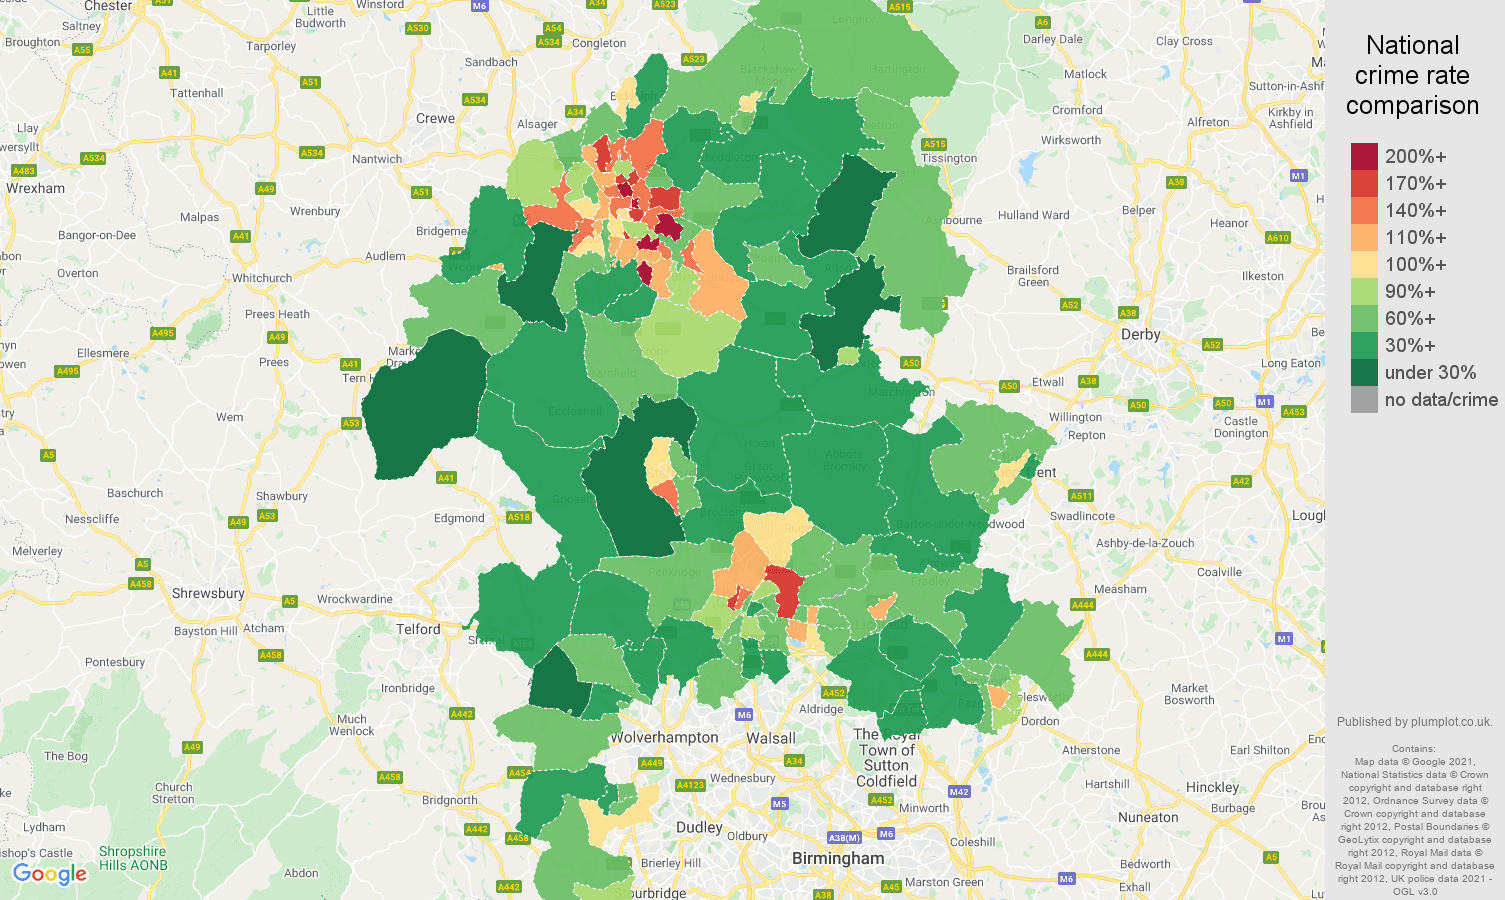 Staffordshire antisocial behaviour crime rate comparison map